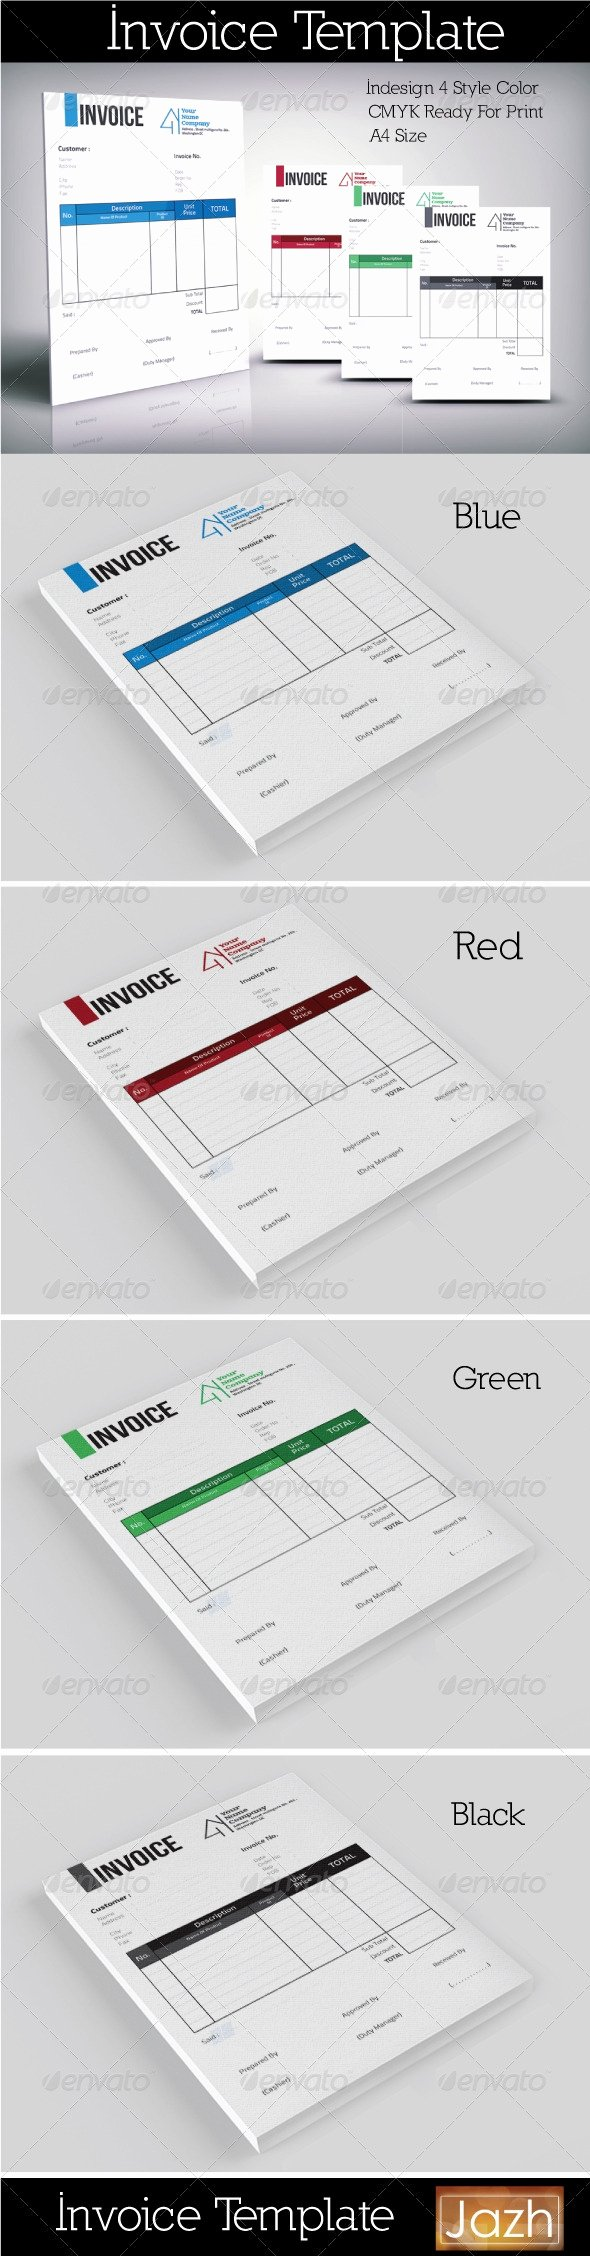 Graphic Design Invoice Template Indesign Luxury Invoice Template Indesign Invoice Template Ideas